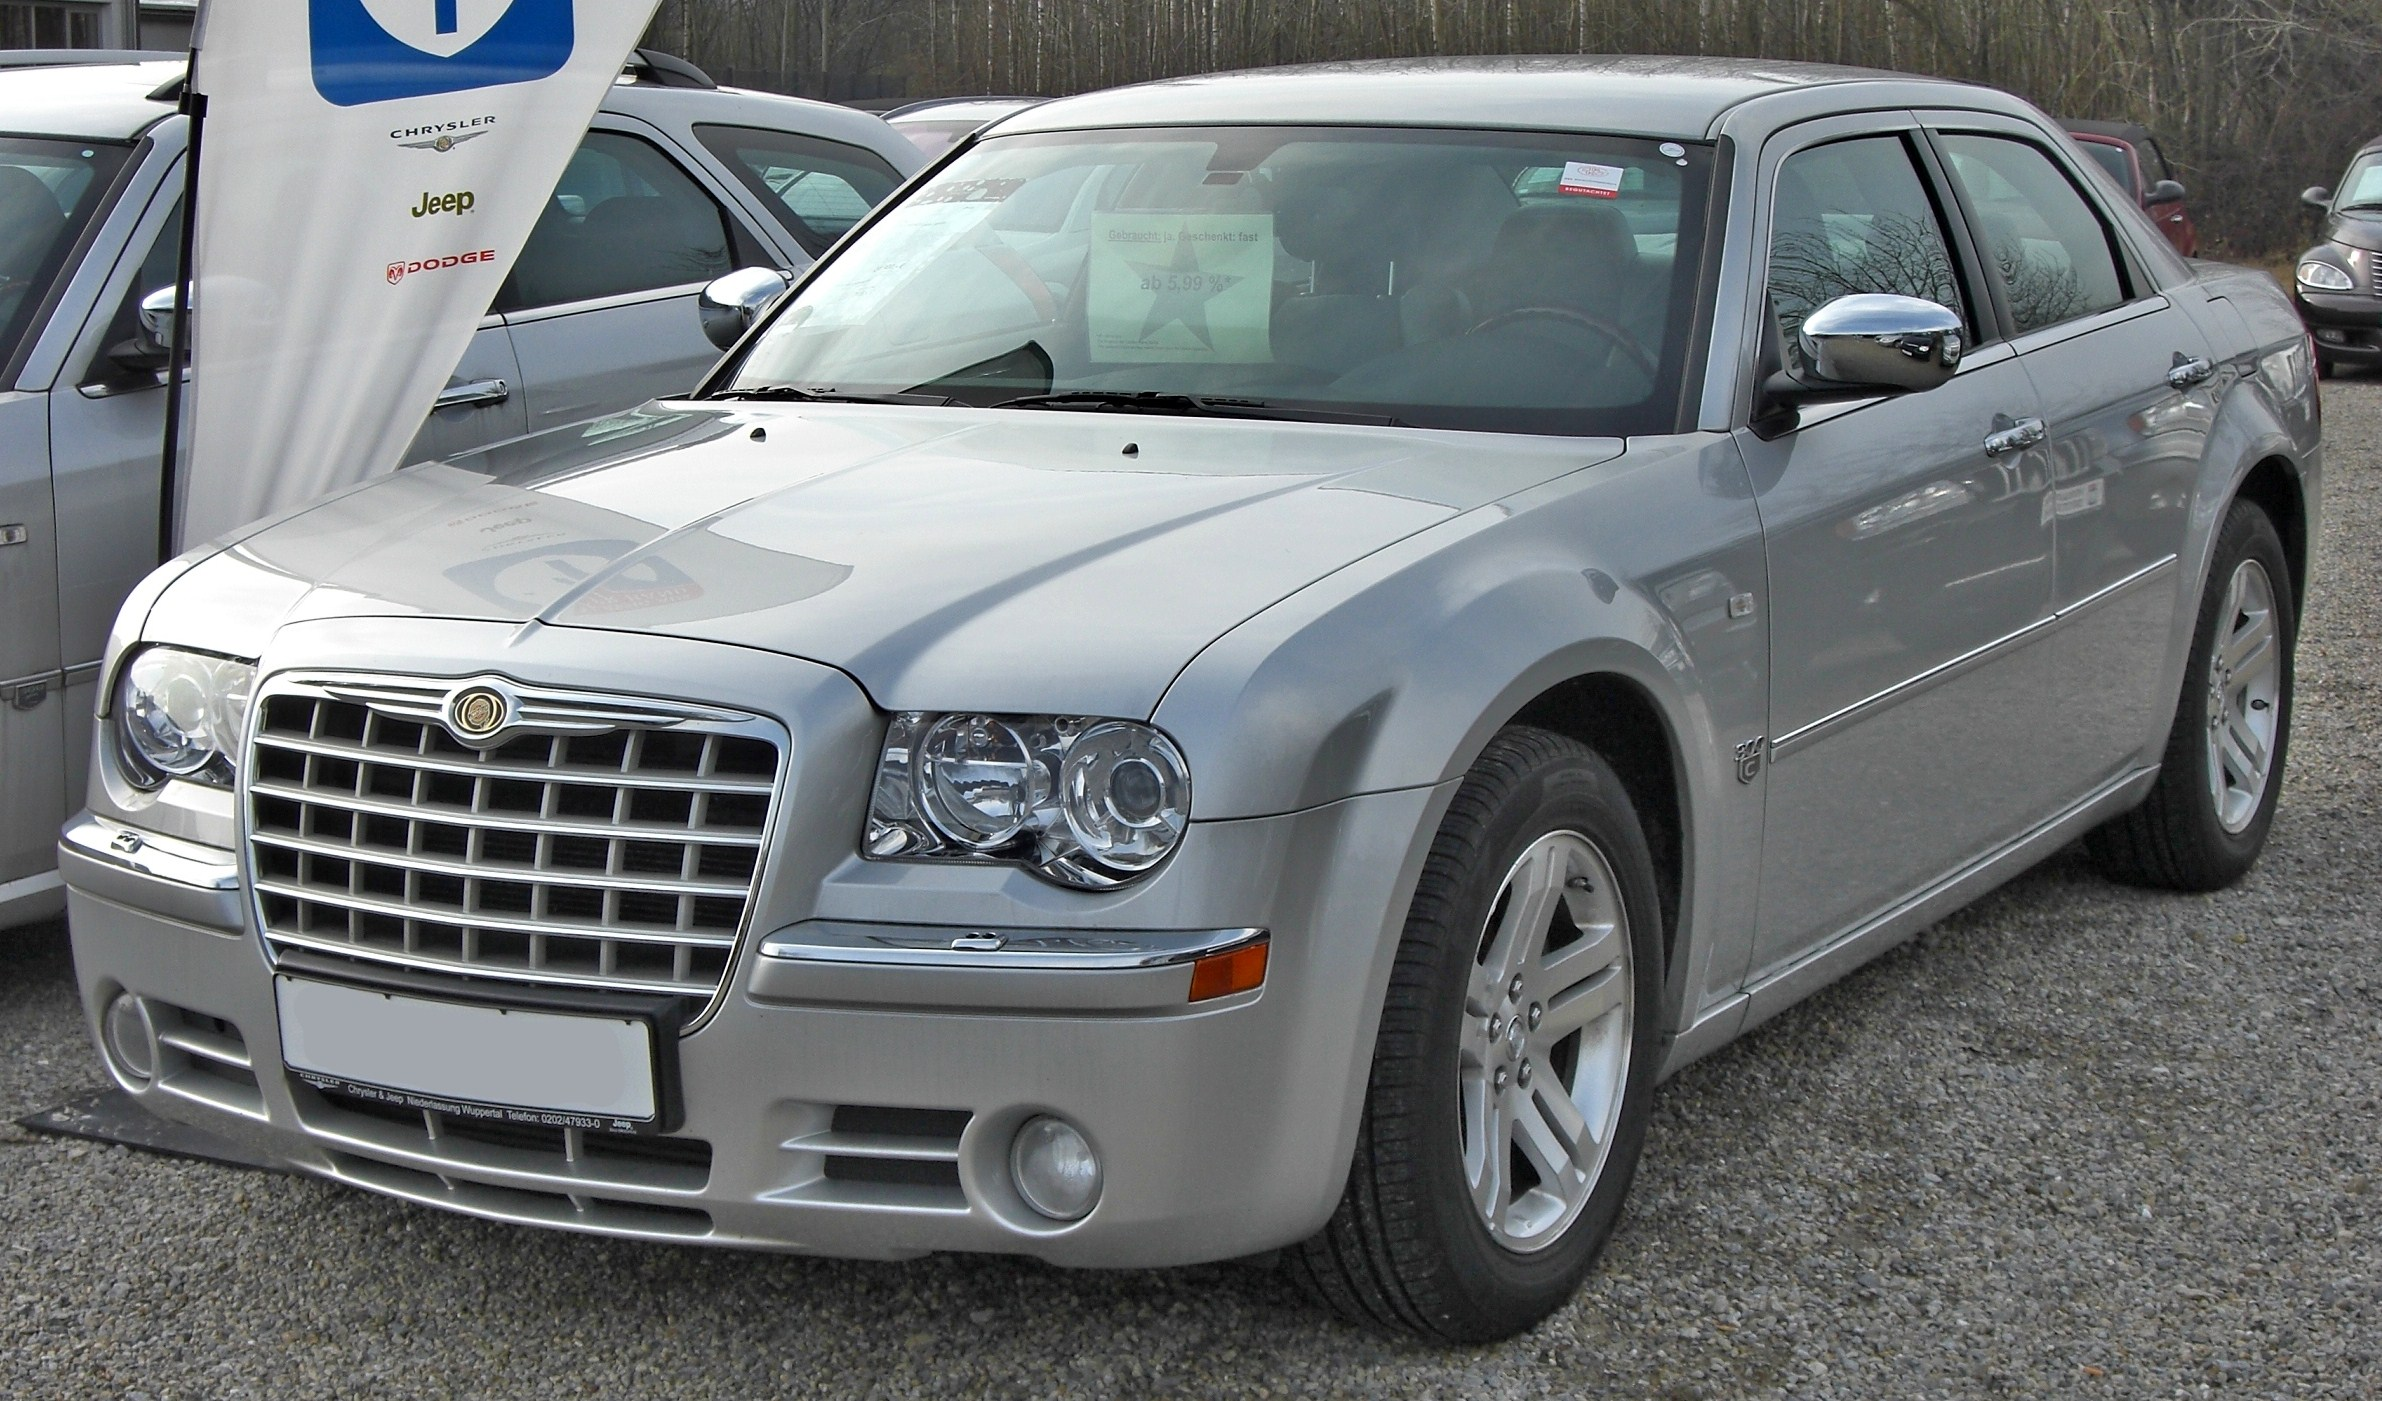 chrysler pt cruiser worst car with Chrysler Pt Cruiser Wikiwand on 5 door hatchback as well Images nysportscars   pictures 57604609 as well Los Coches Mas Feos furthermore Forney Family Photographer additionally 2003 Chrysler Pt Cruiser.